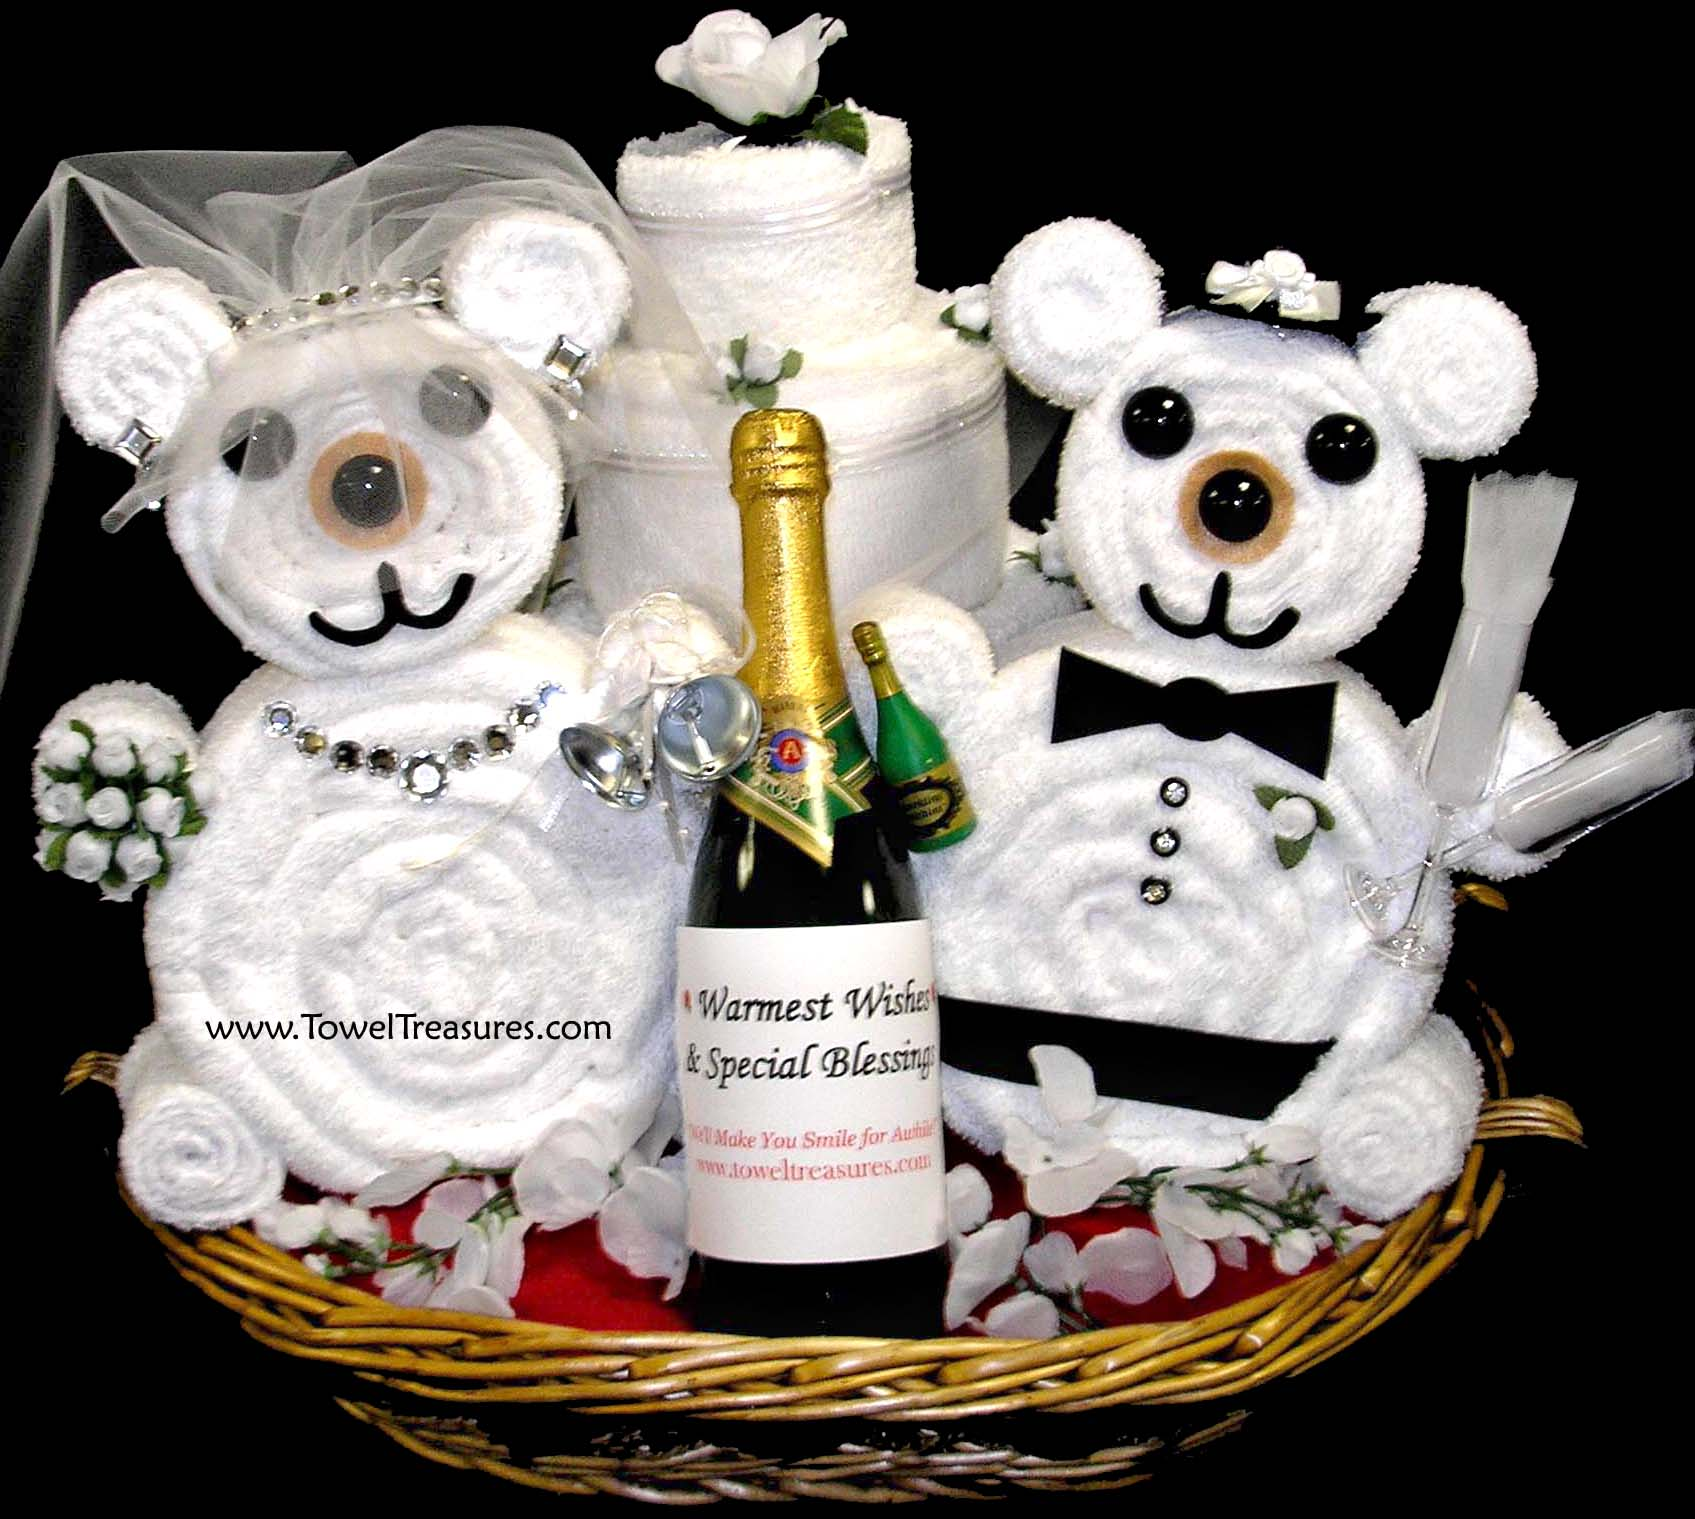 Bridal Shower Wine Gift Basket Ideas : The Smile For Awhile Company Ideas-TSFACI.com